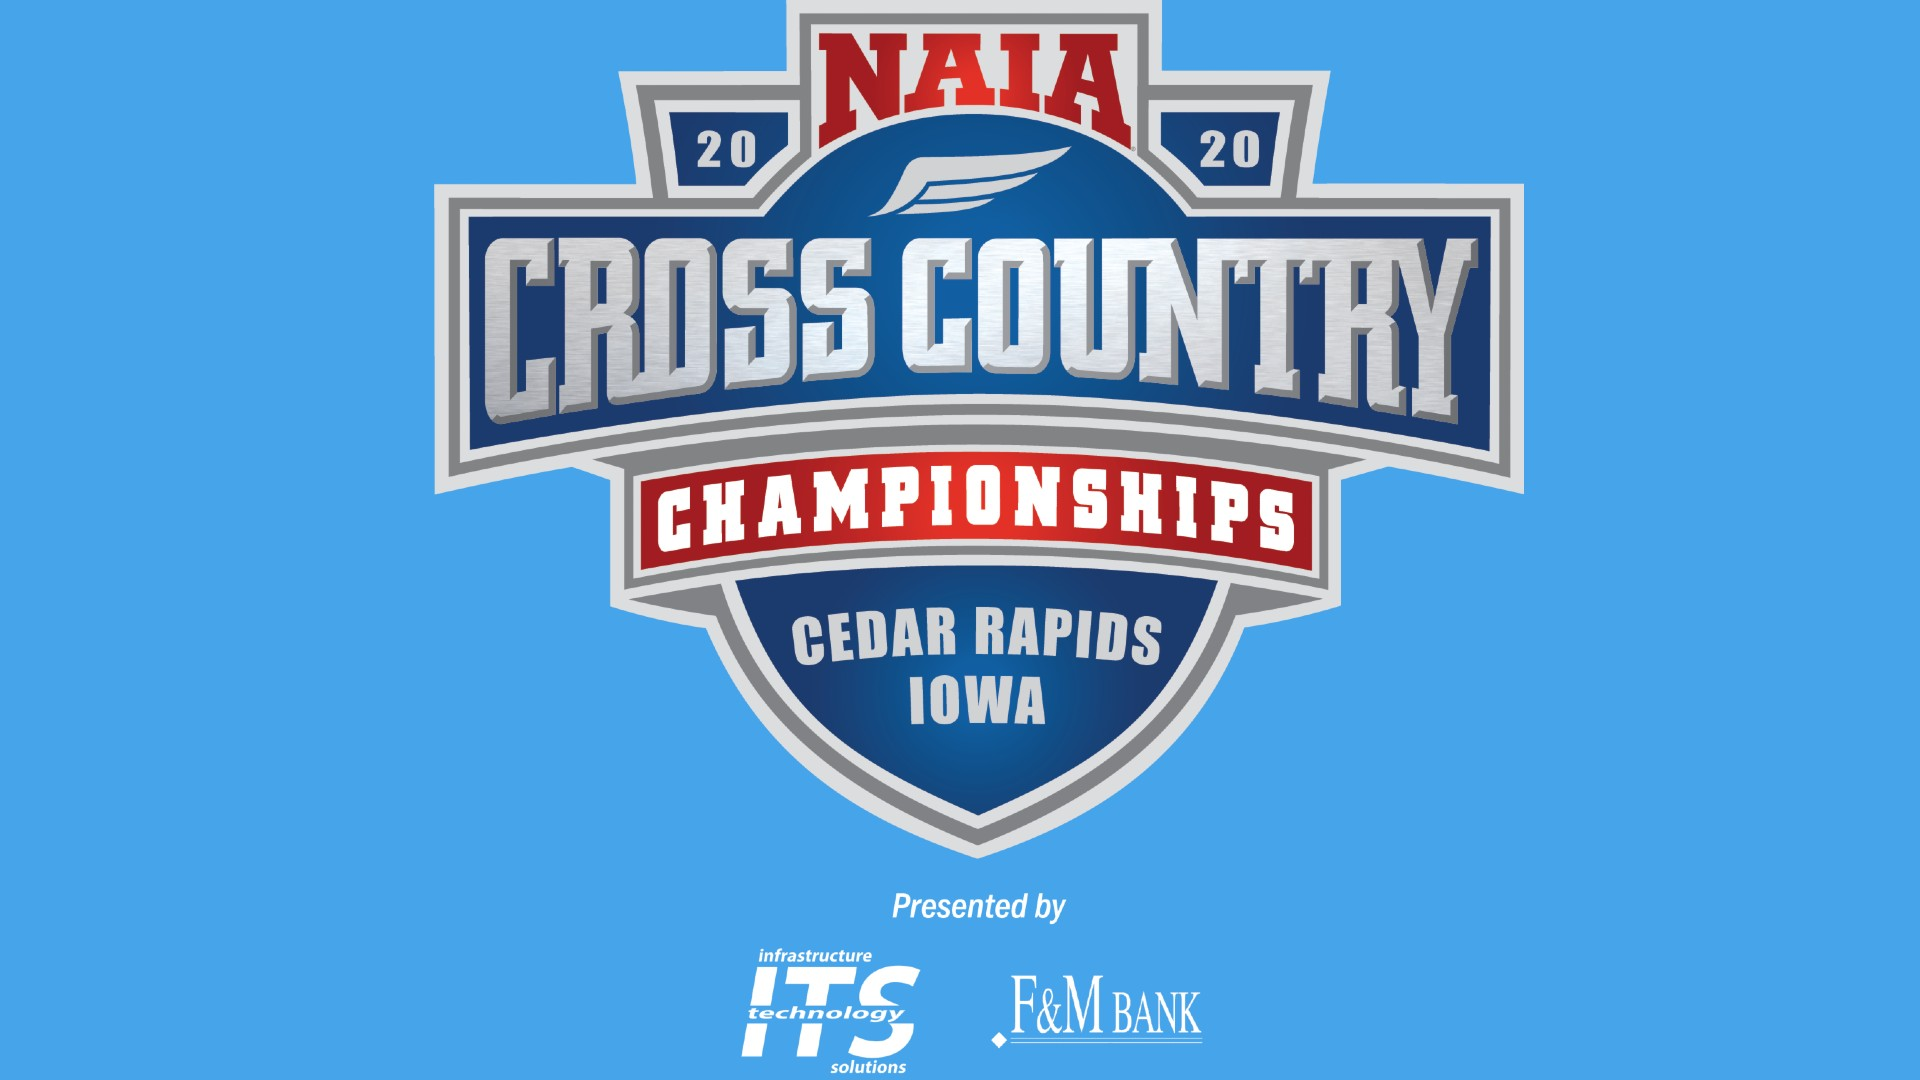 2020_NAIA_Cross_Country Championships_Watch_Live_Stream